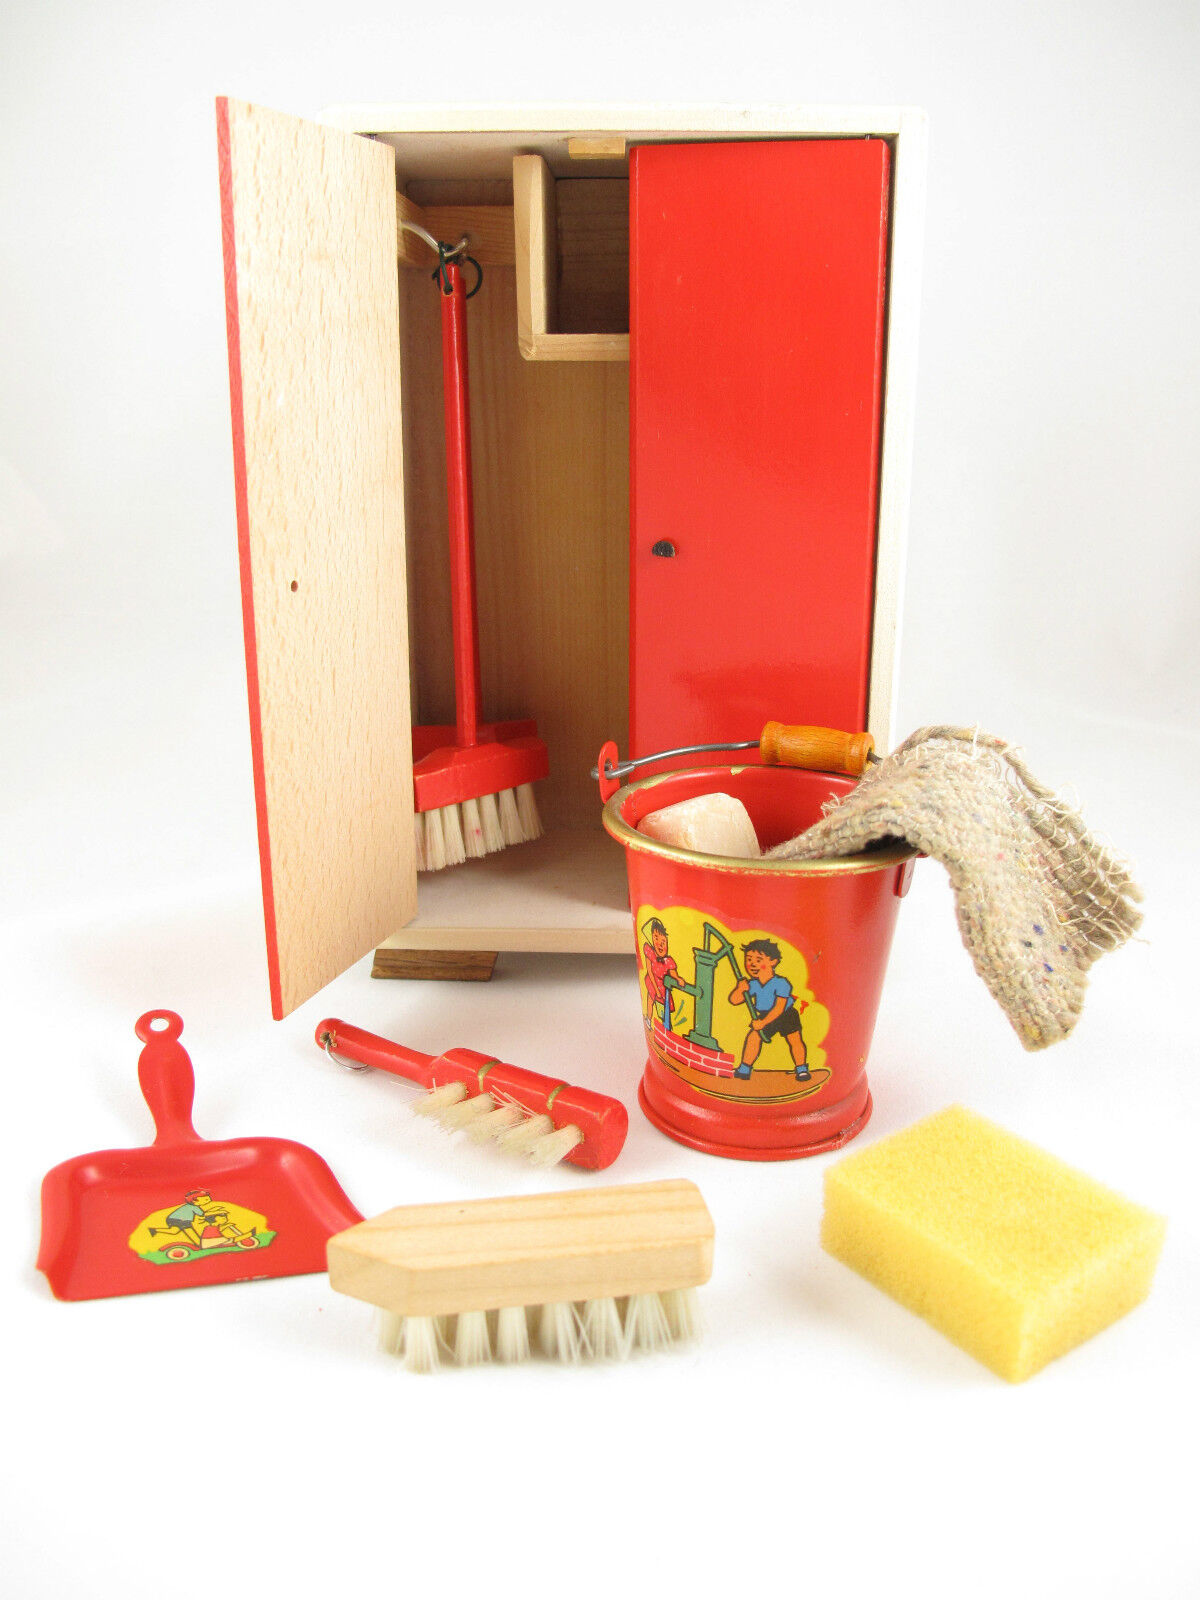 rot WOODEN CUPBOARD   Doll House Größed Accessory   Made in East Germany Ostalgia